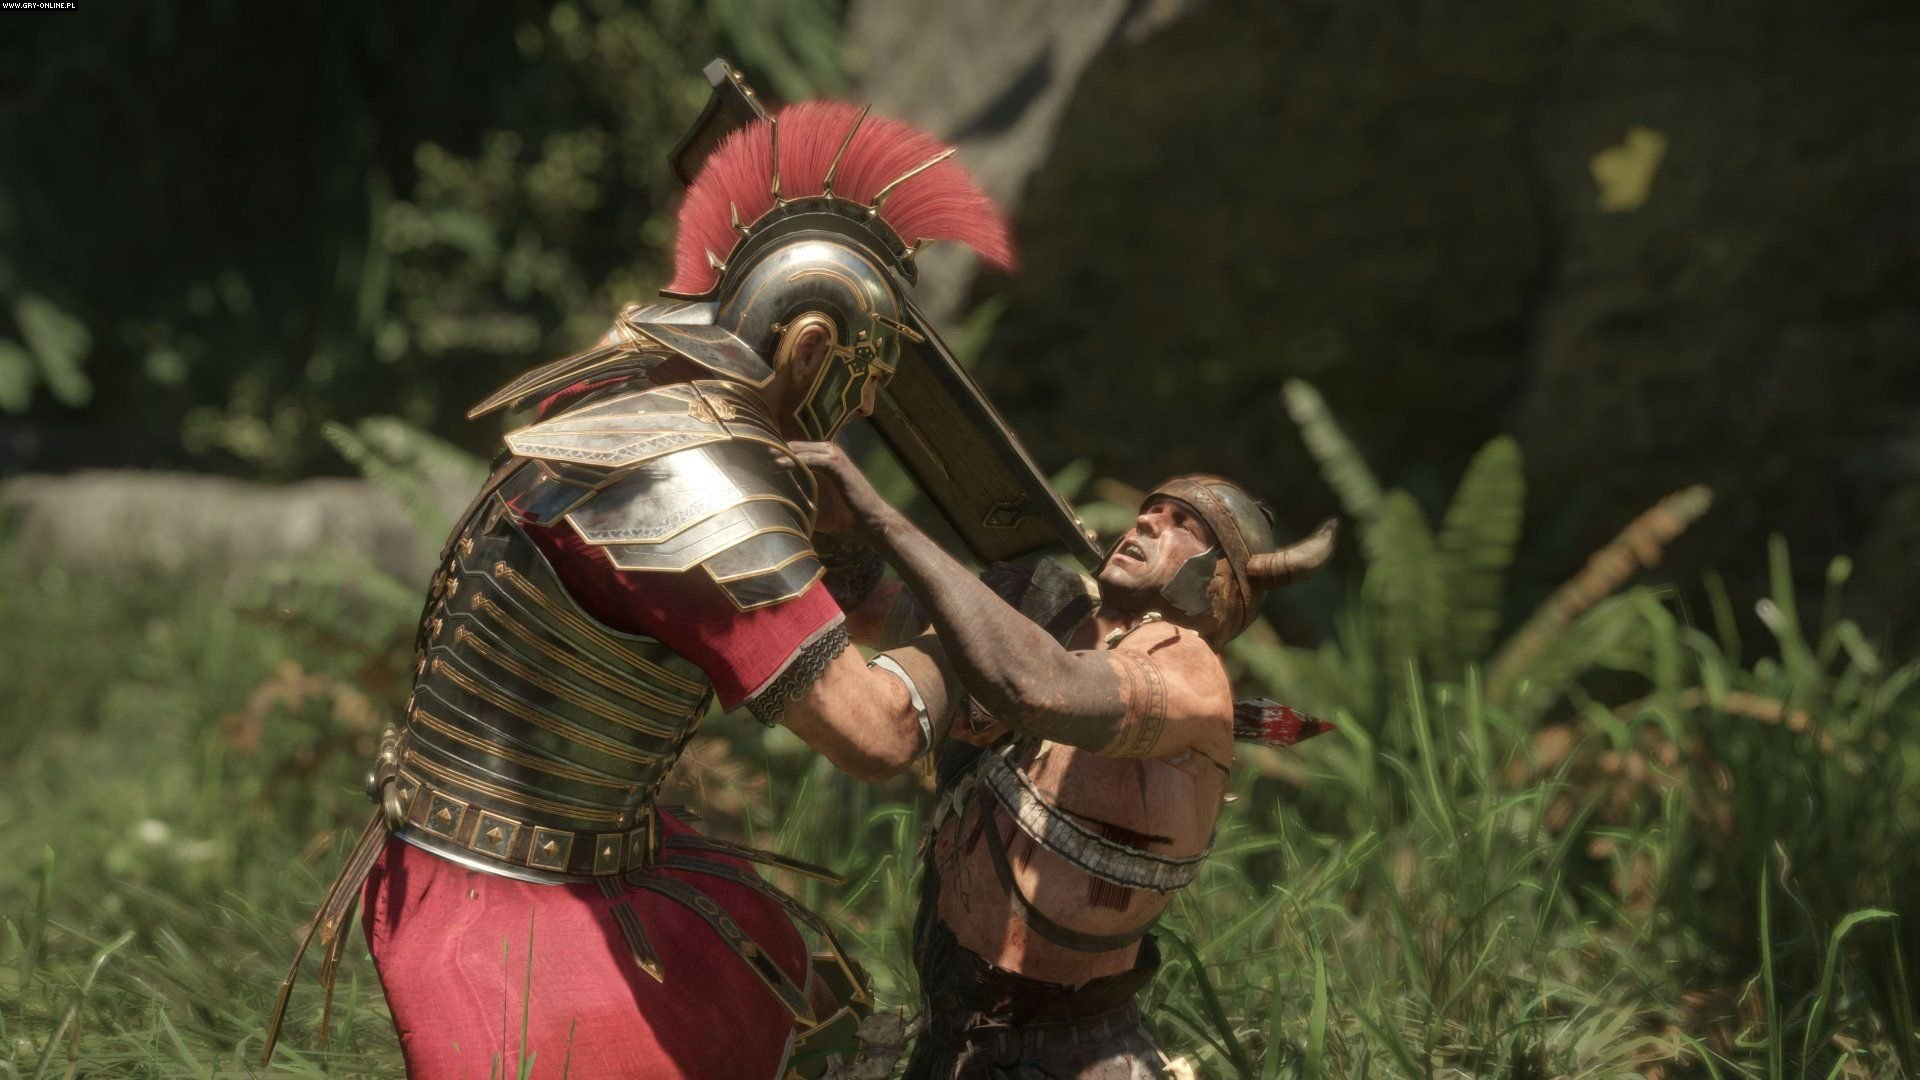 Ryse: Son of Rome PC, XONE Games Image 3/55, Crytek, Deep Silver / Koch Media